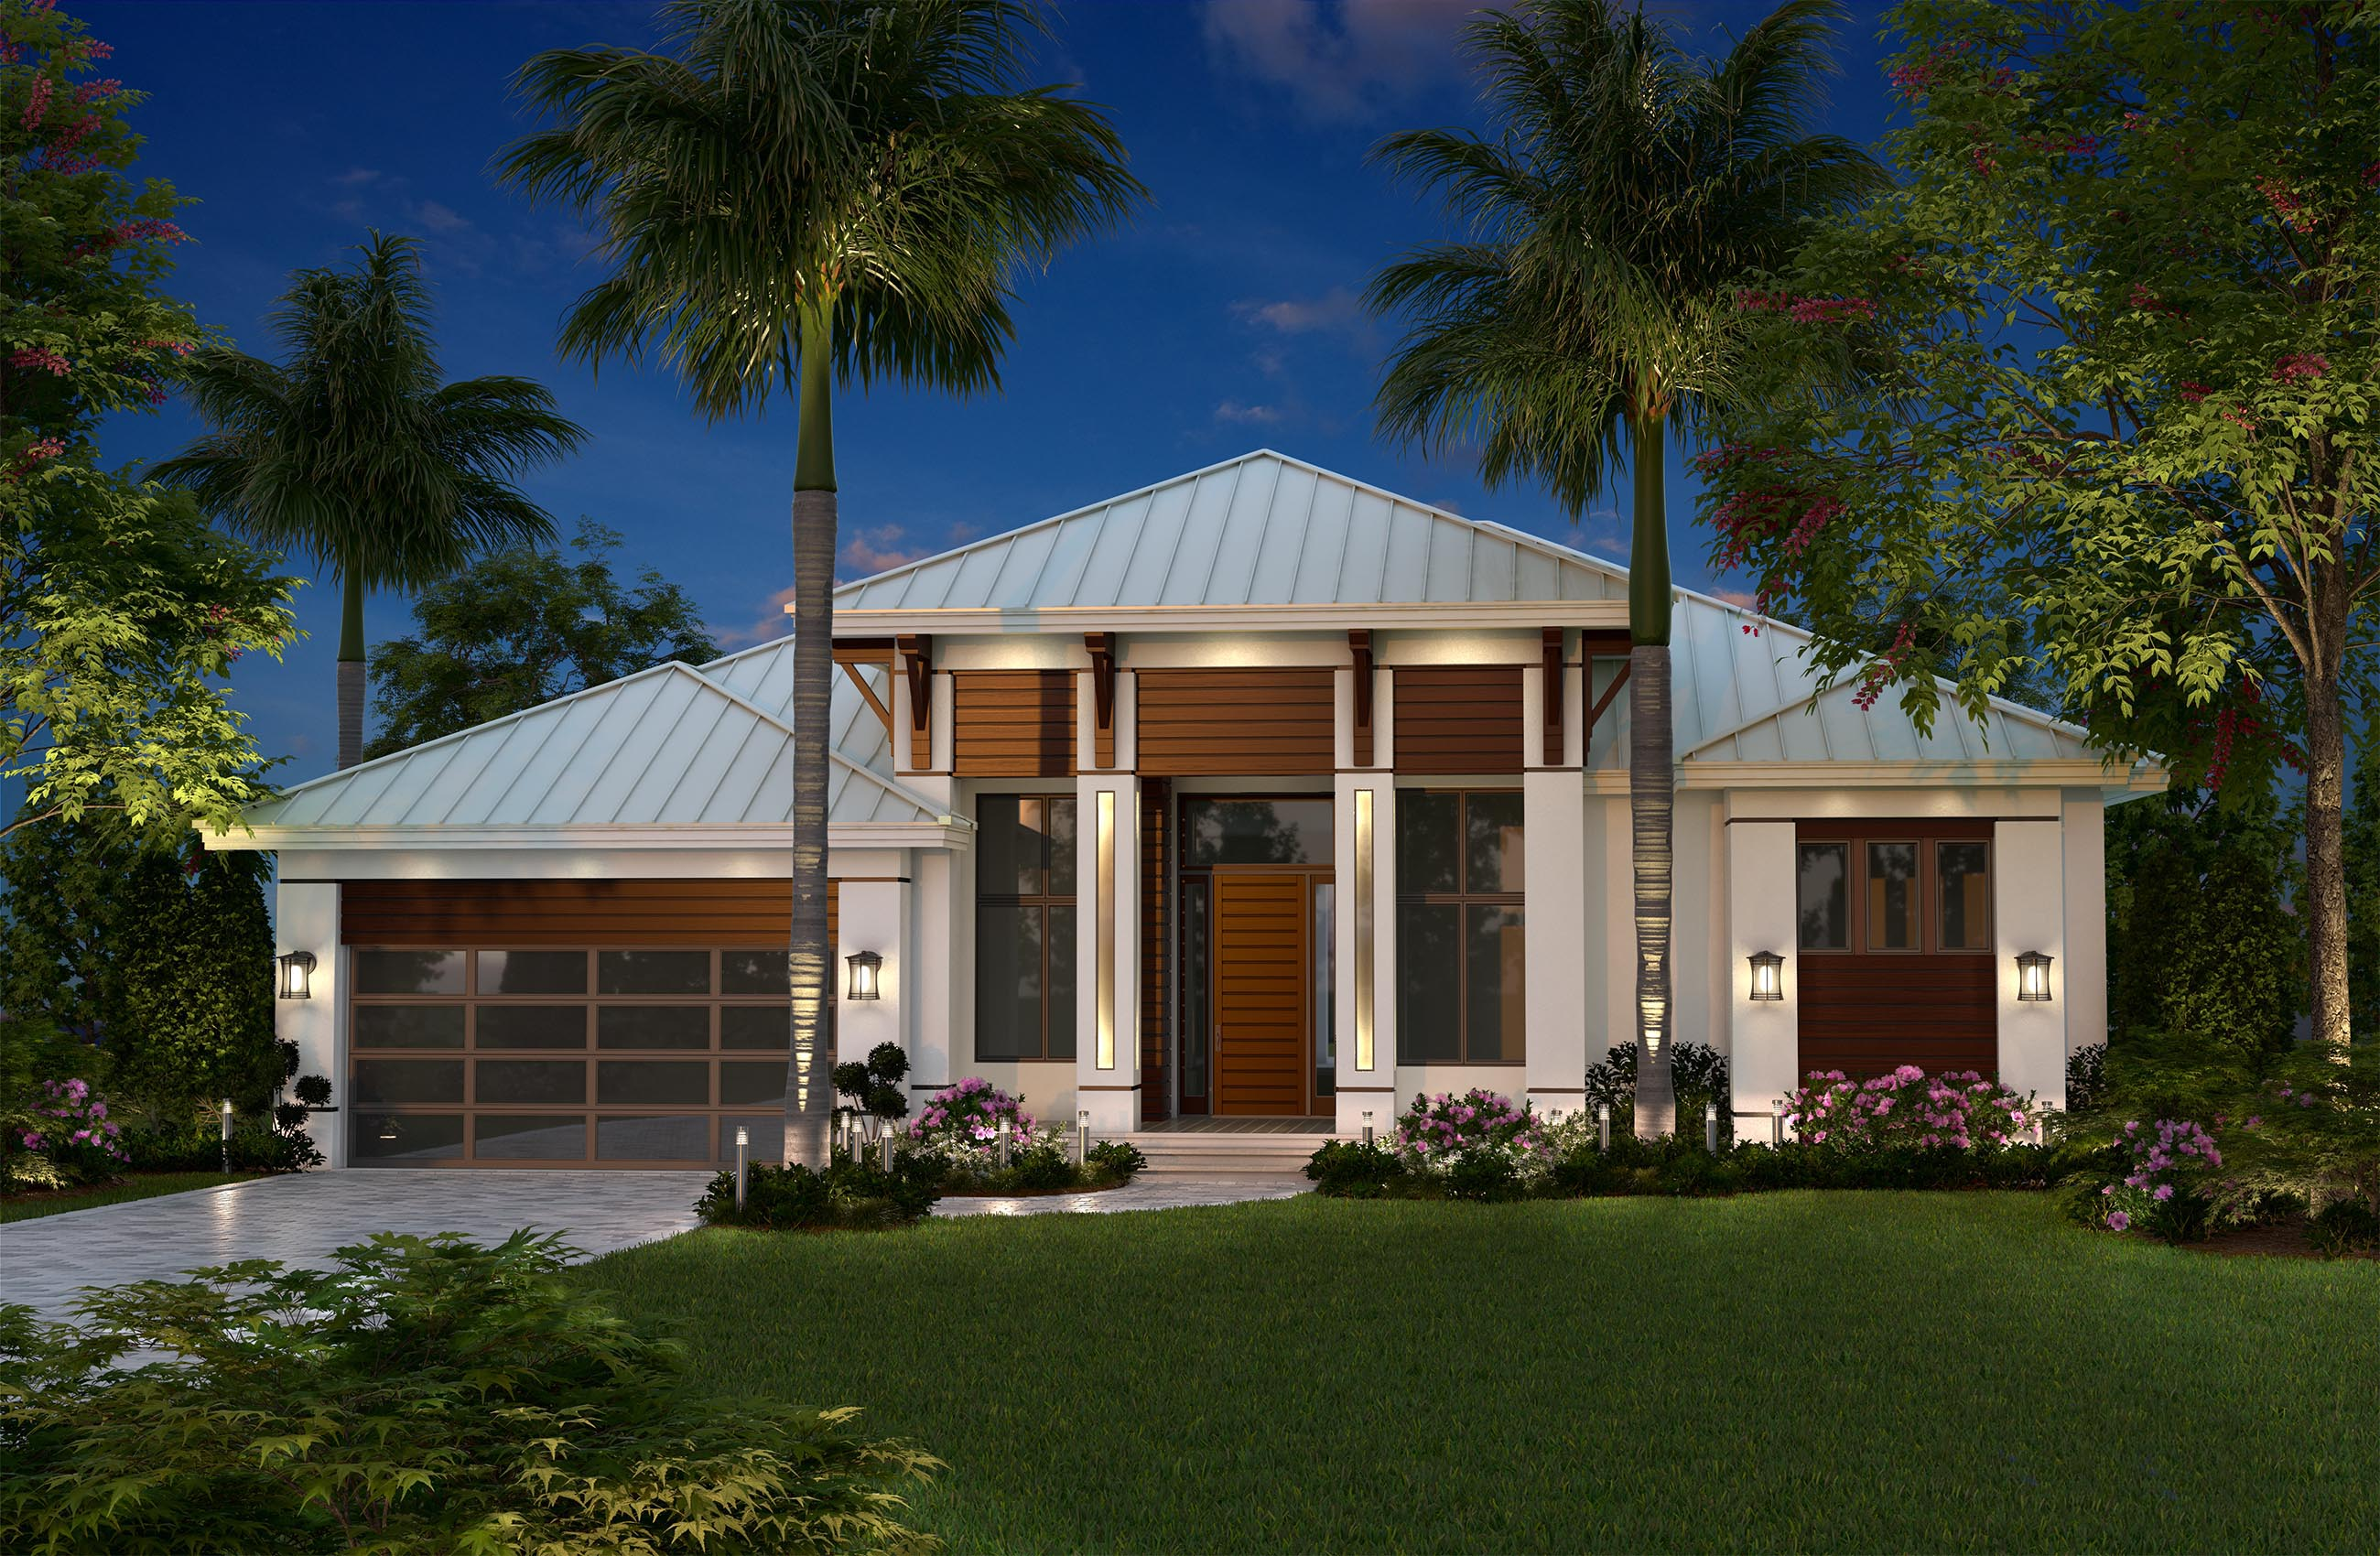 What You Need To Know About the North Facing House Plan